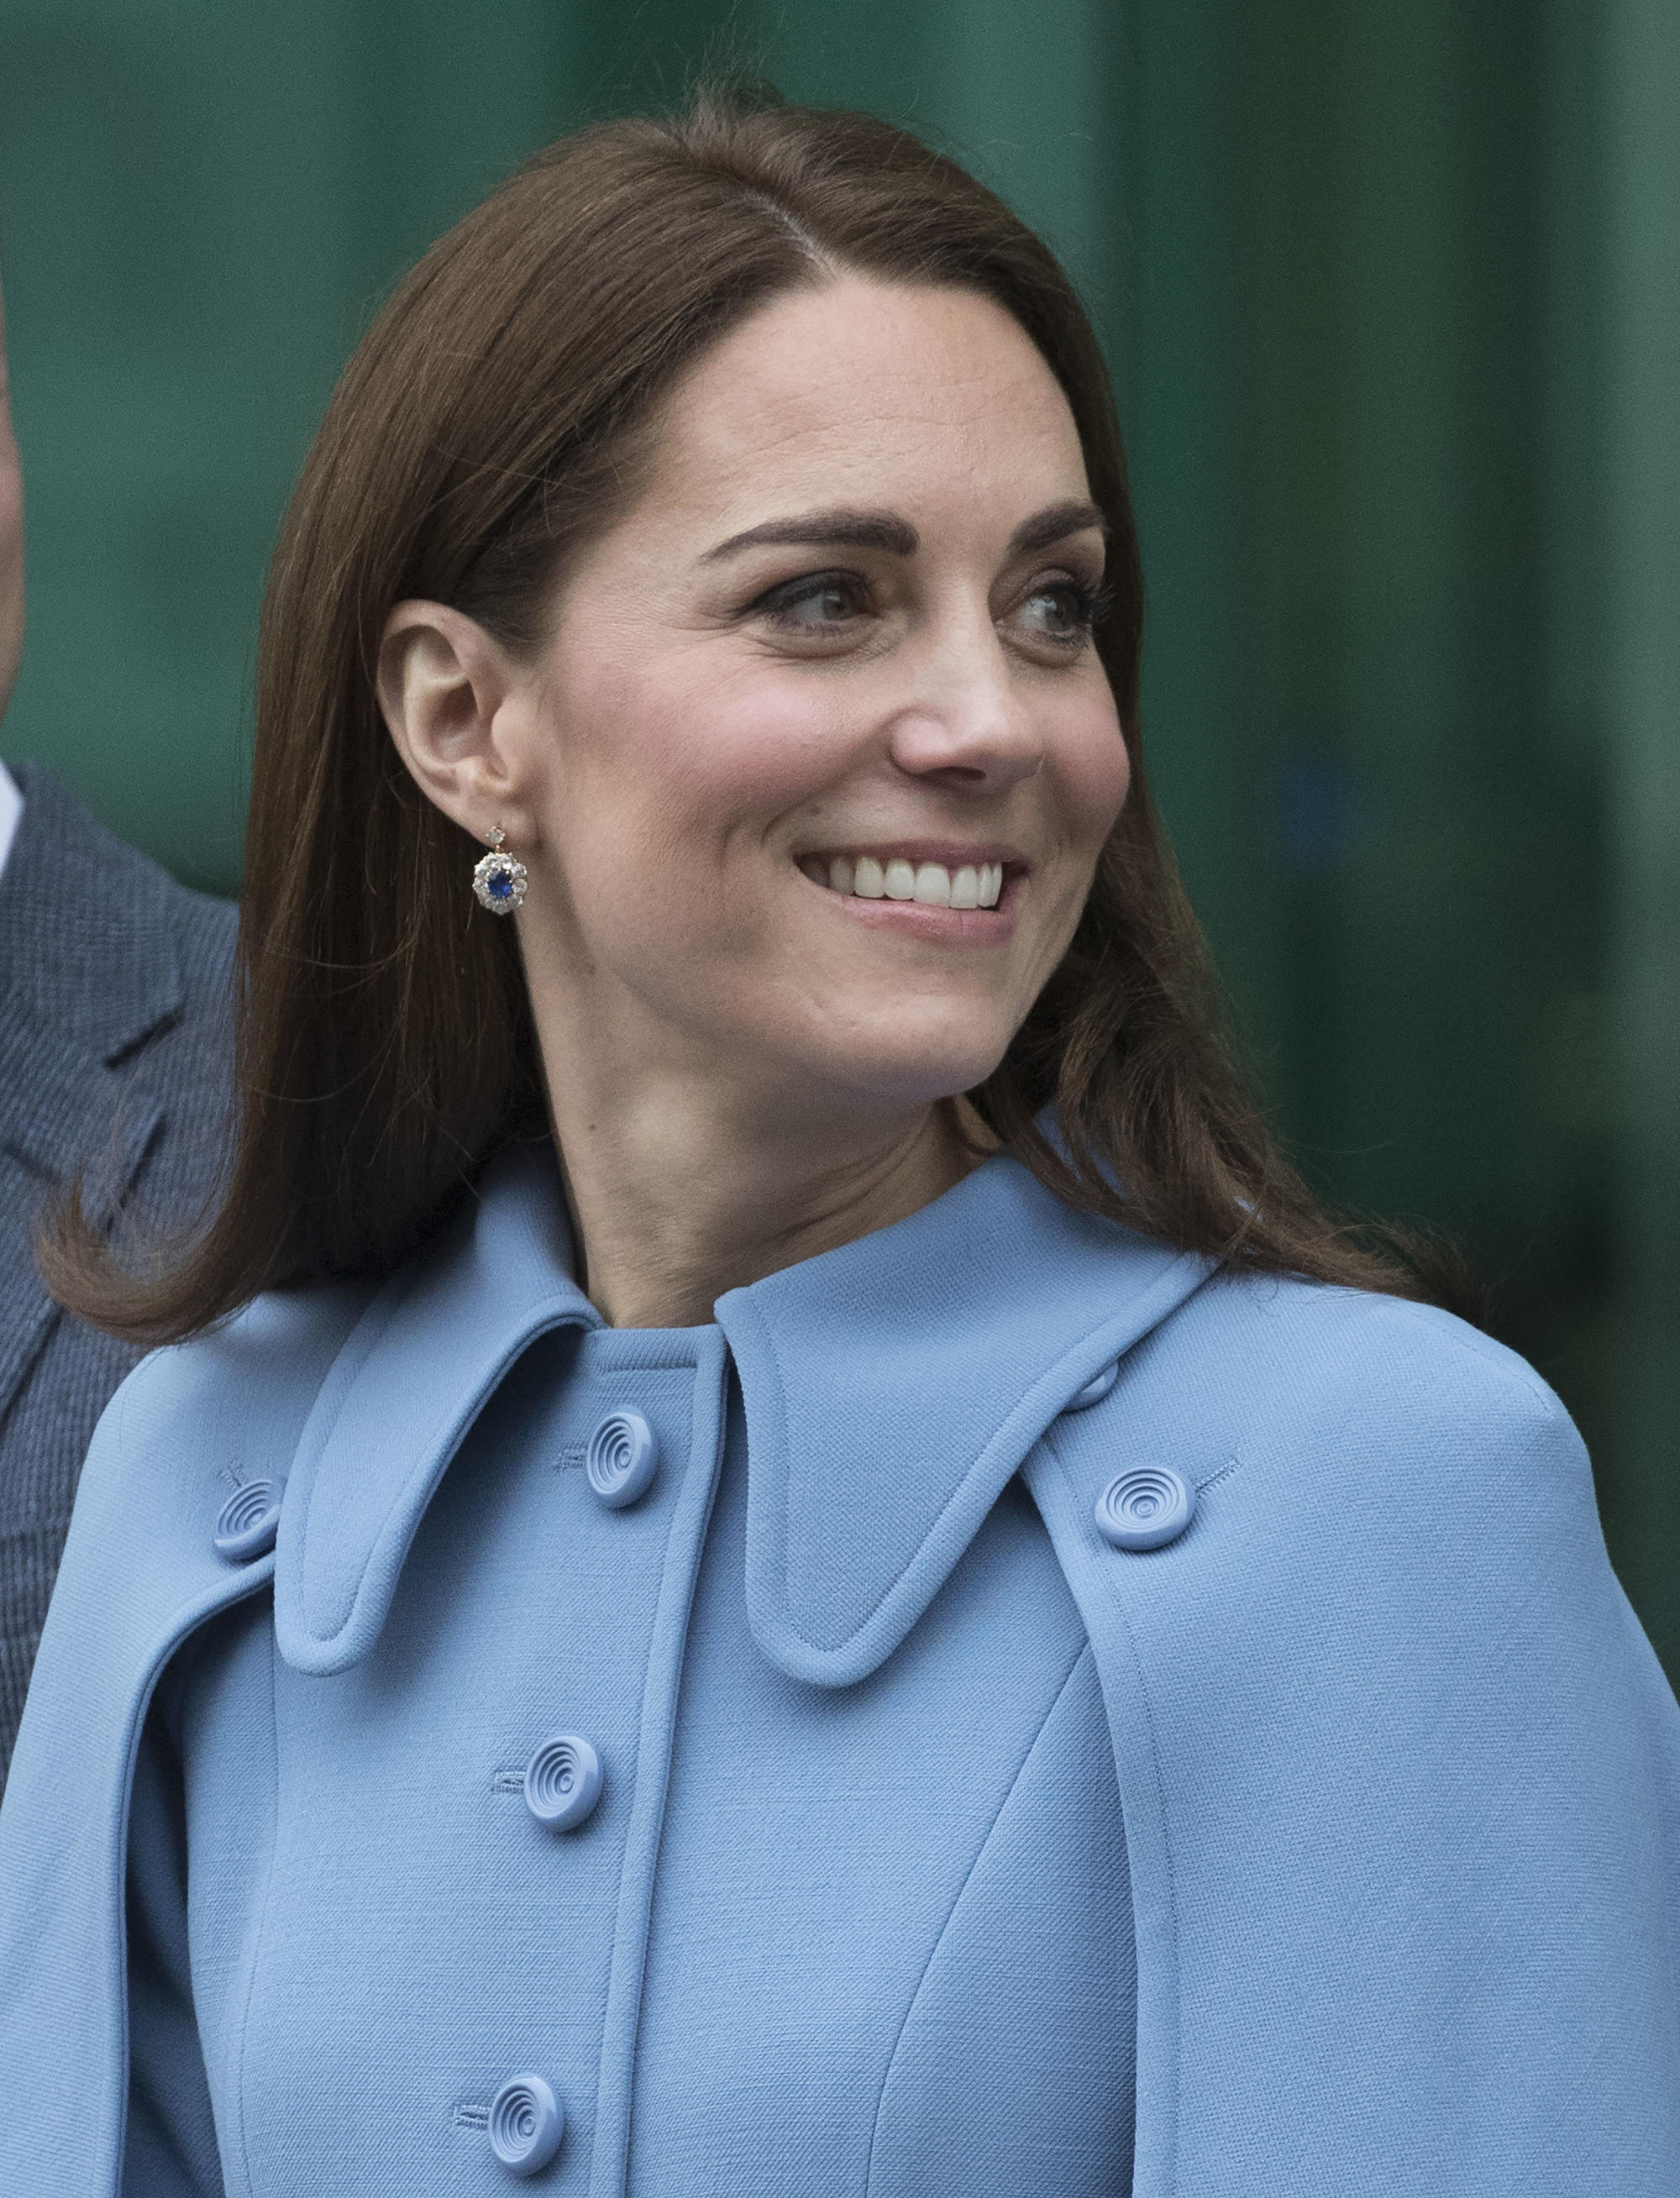 Kate Middleton receives first dose of COVID-19 vaccine: 'I'm hugely grateful'